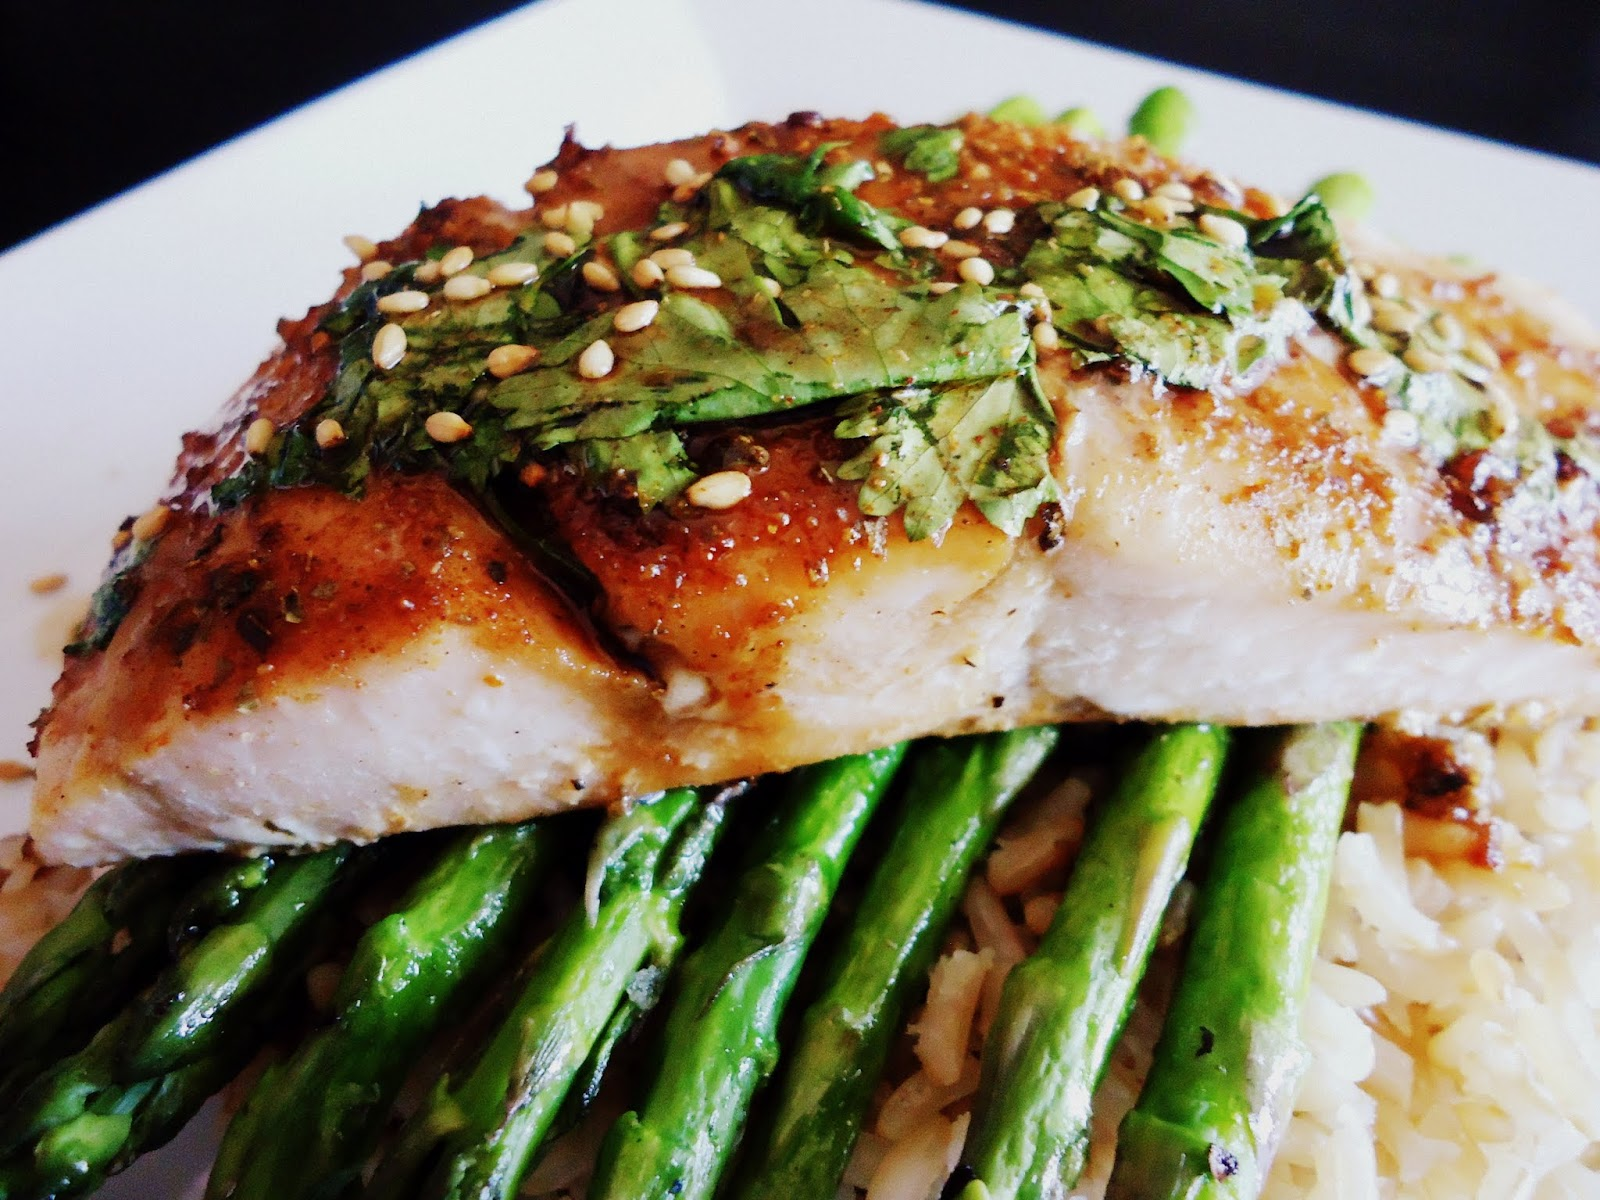 ... & Fabulous: Asian Glazed Sesame Salmon with Asparagus and Brown Rice